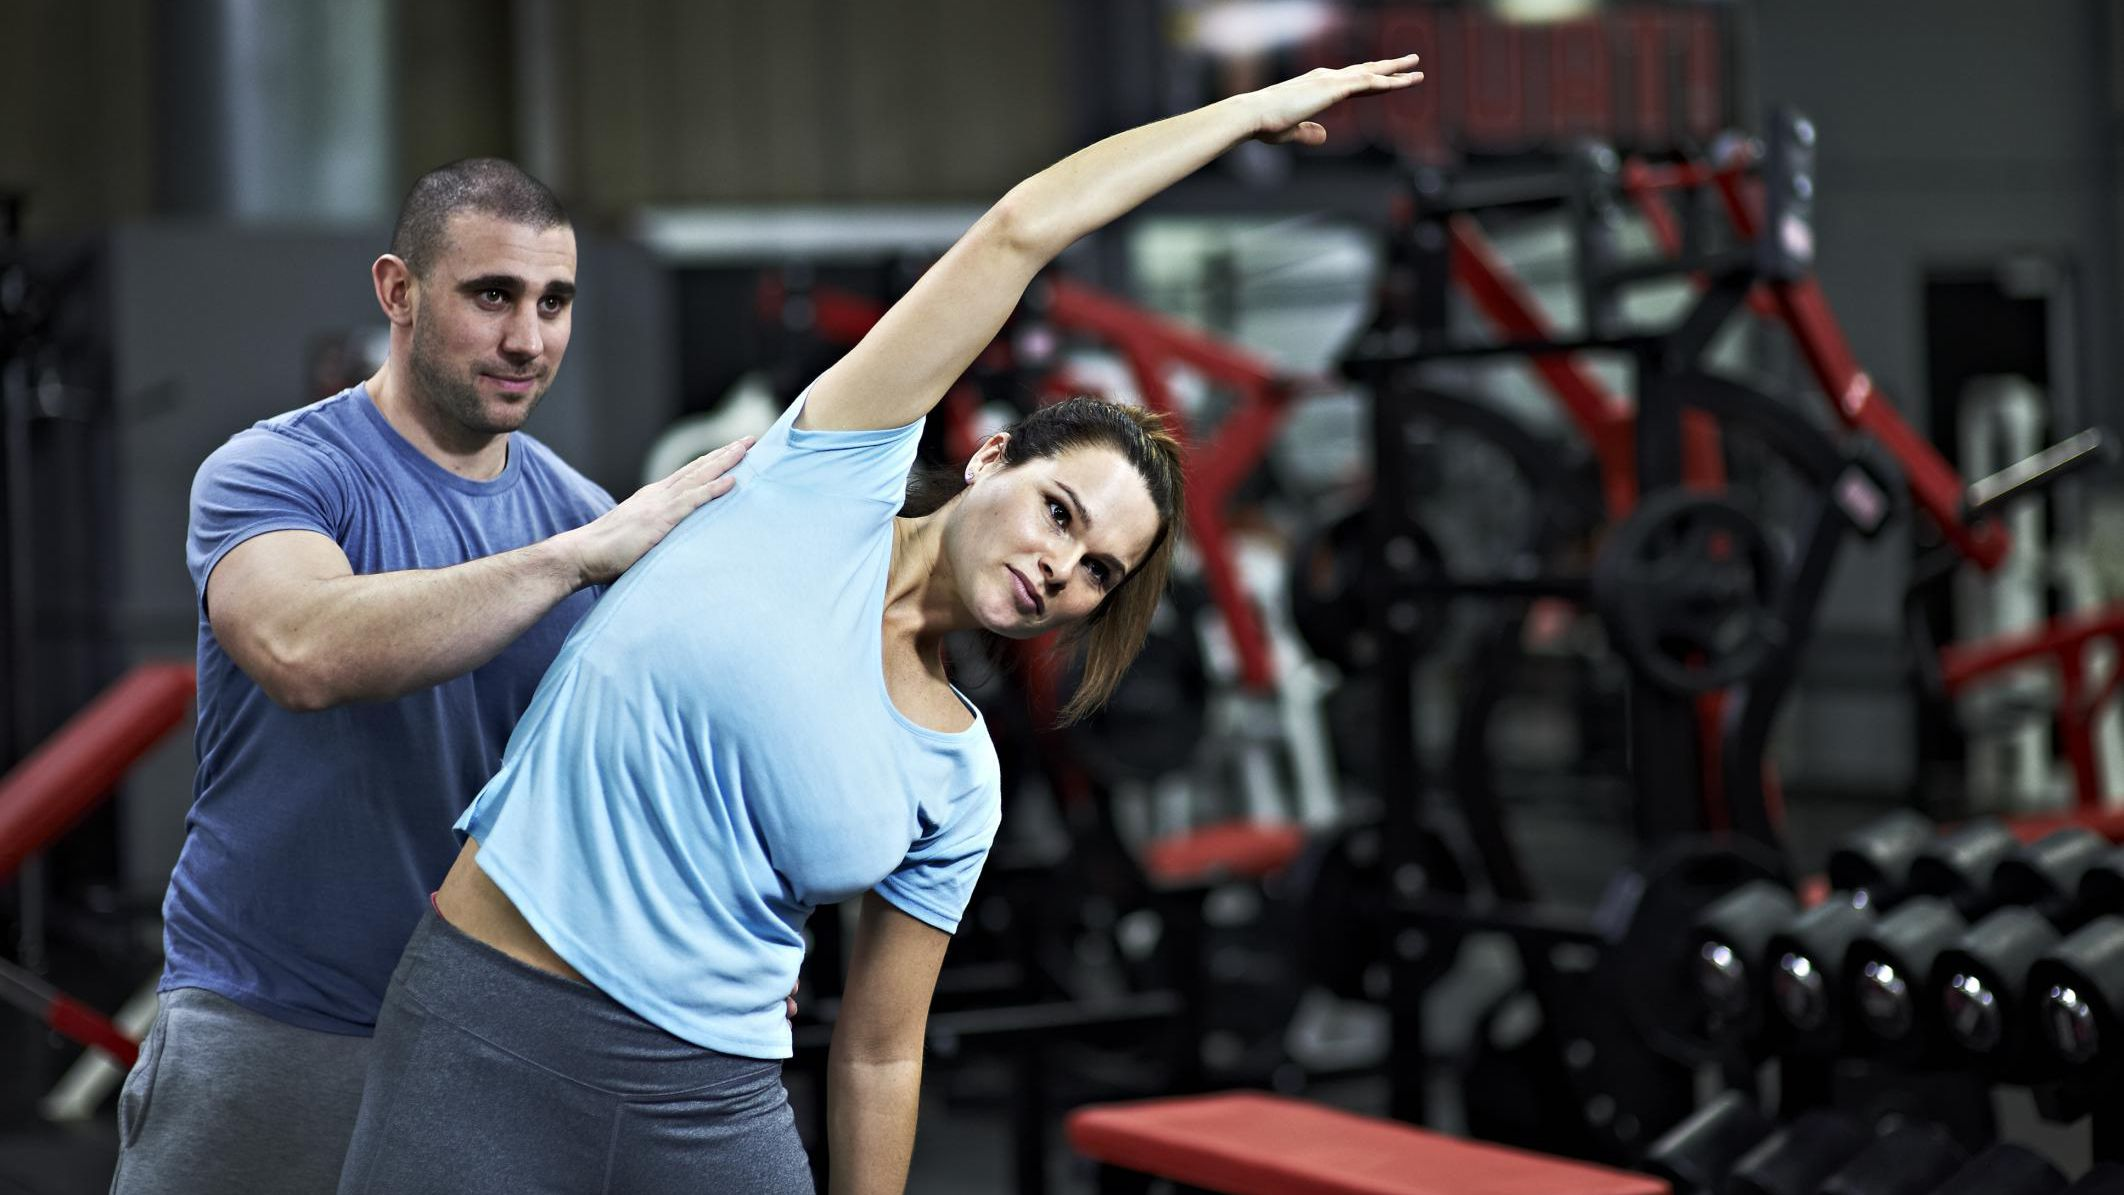 8 Steps to Become a Personal Fitness Trainer